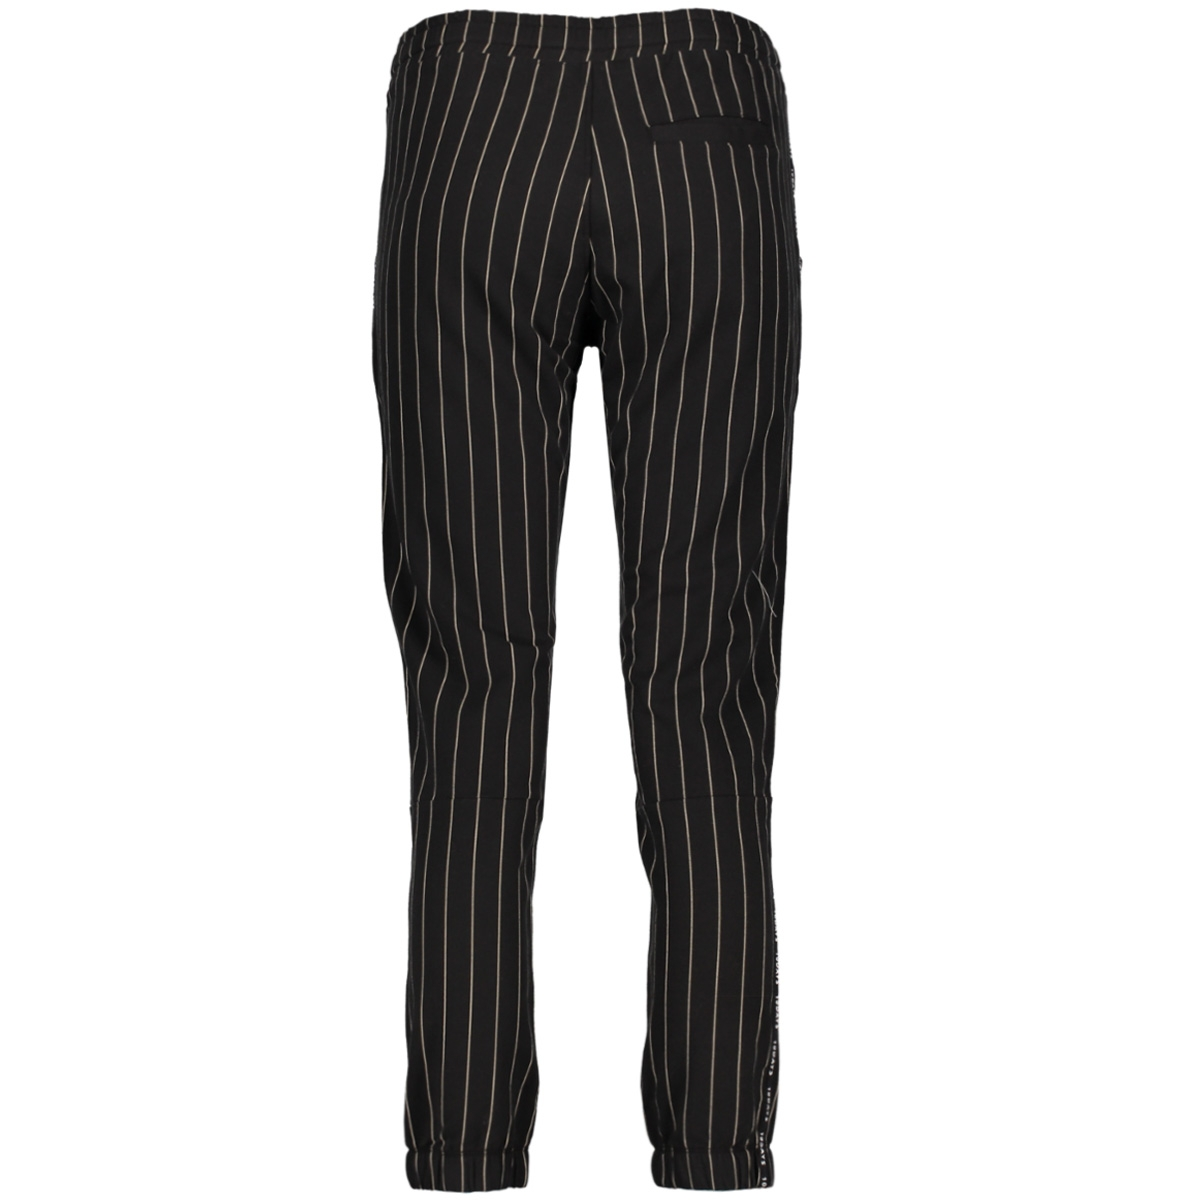 20-017-8101 10 days broek black